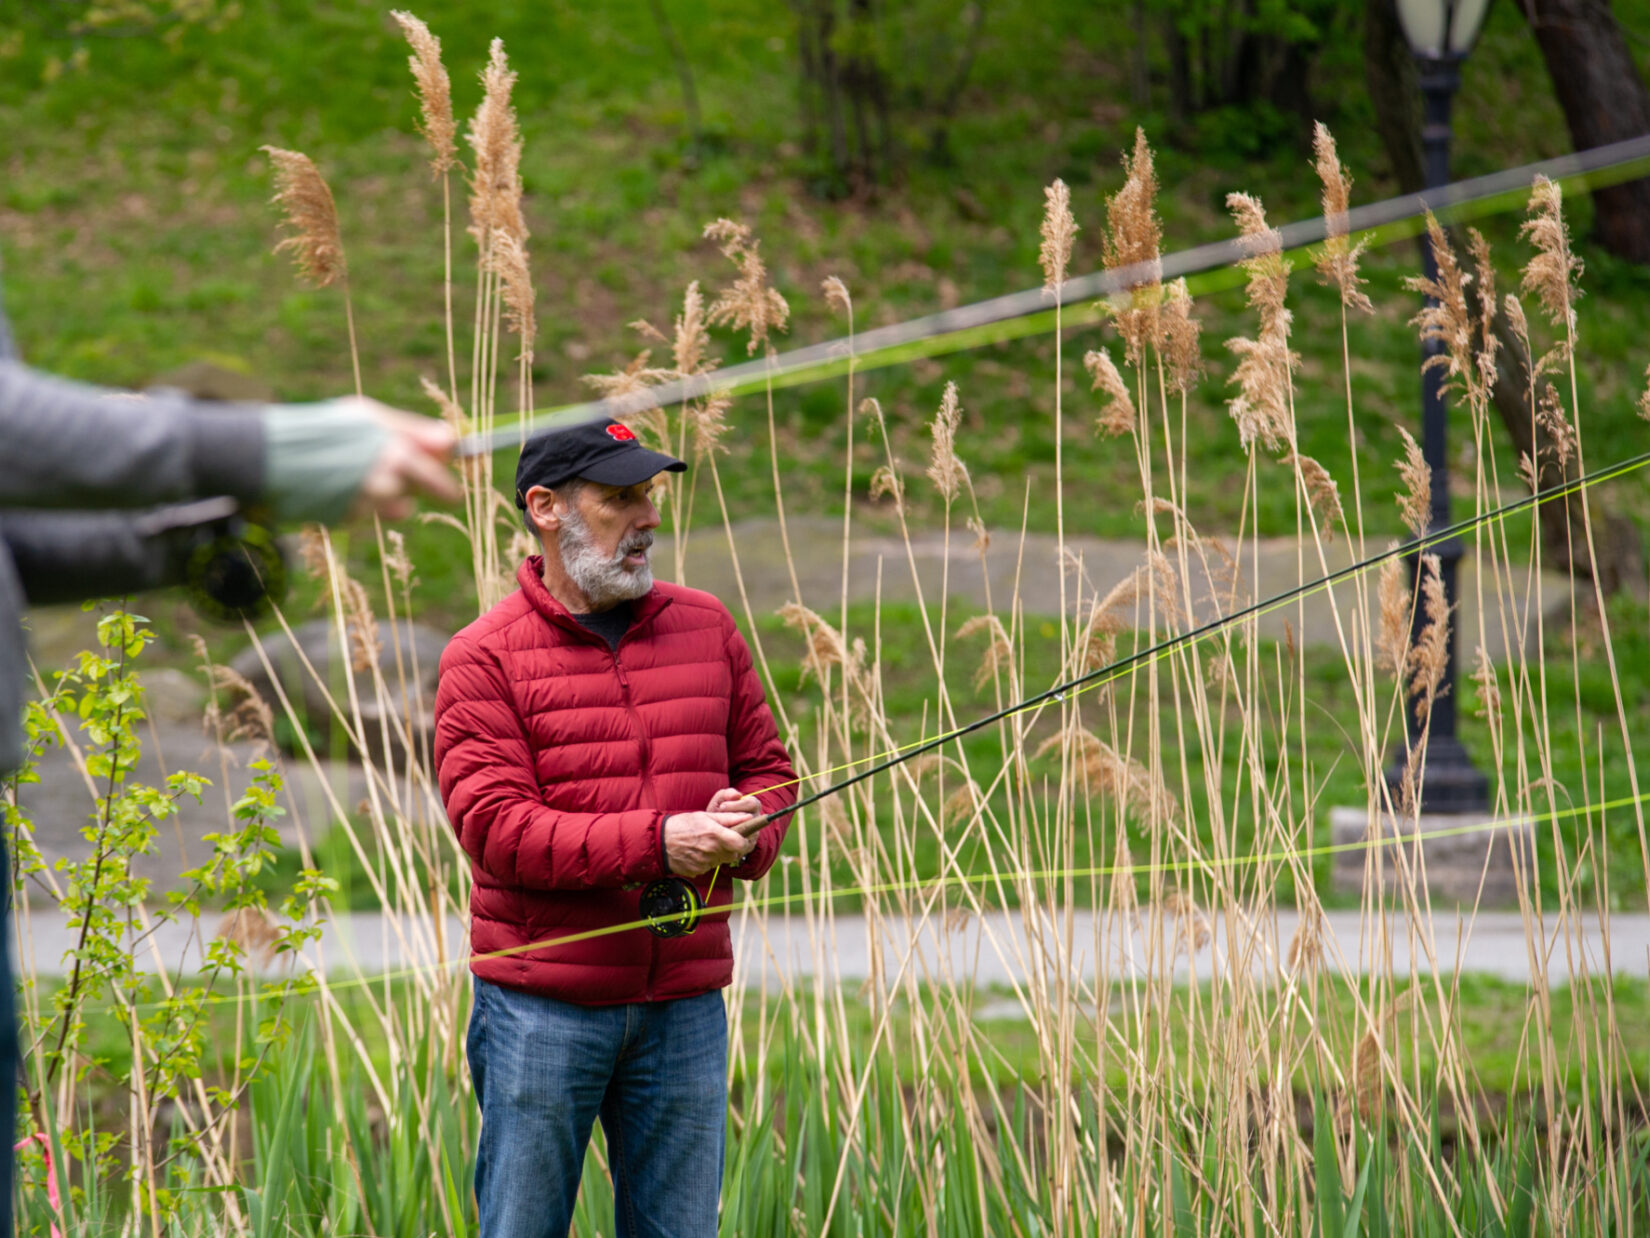 Two fishermen, dressed for chilly weather, casting their fishing rods on the Harlem Meer